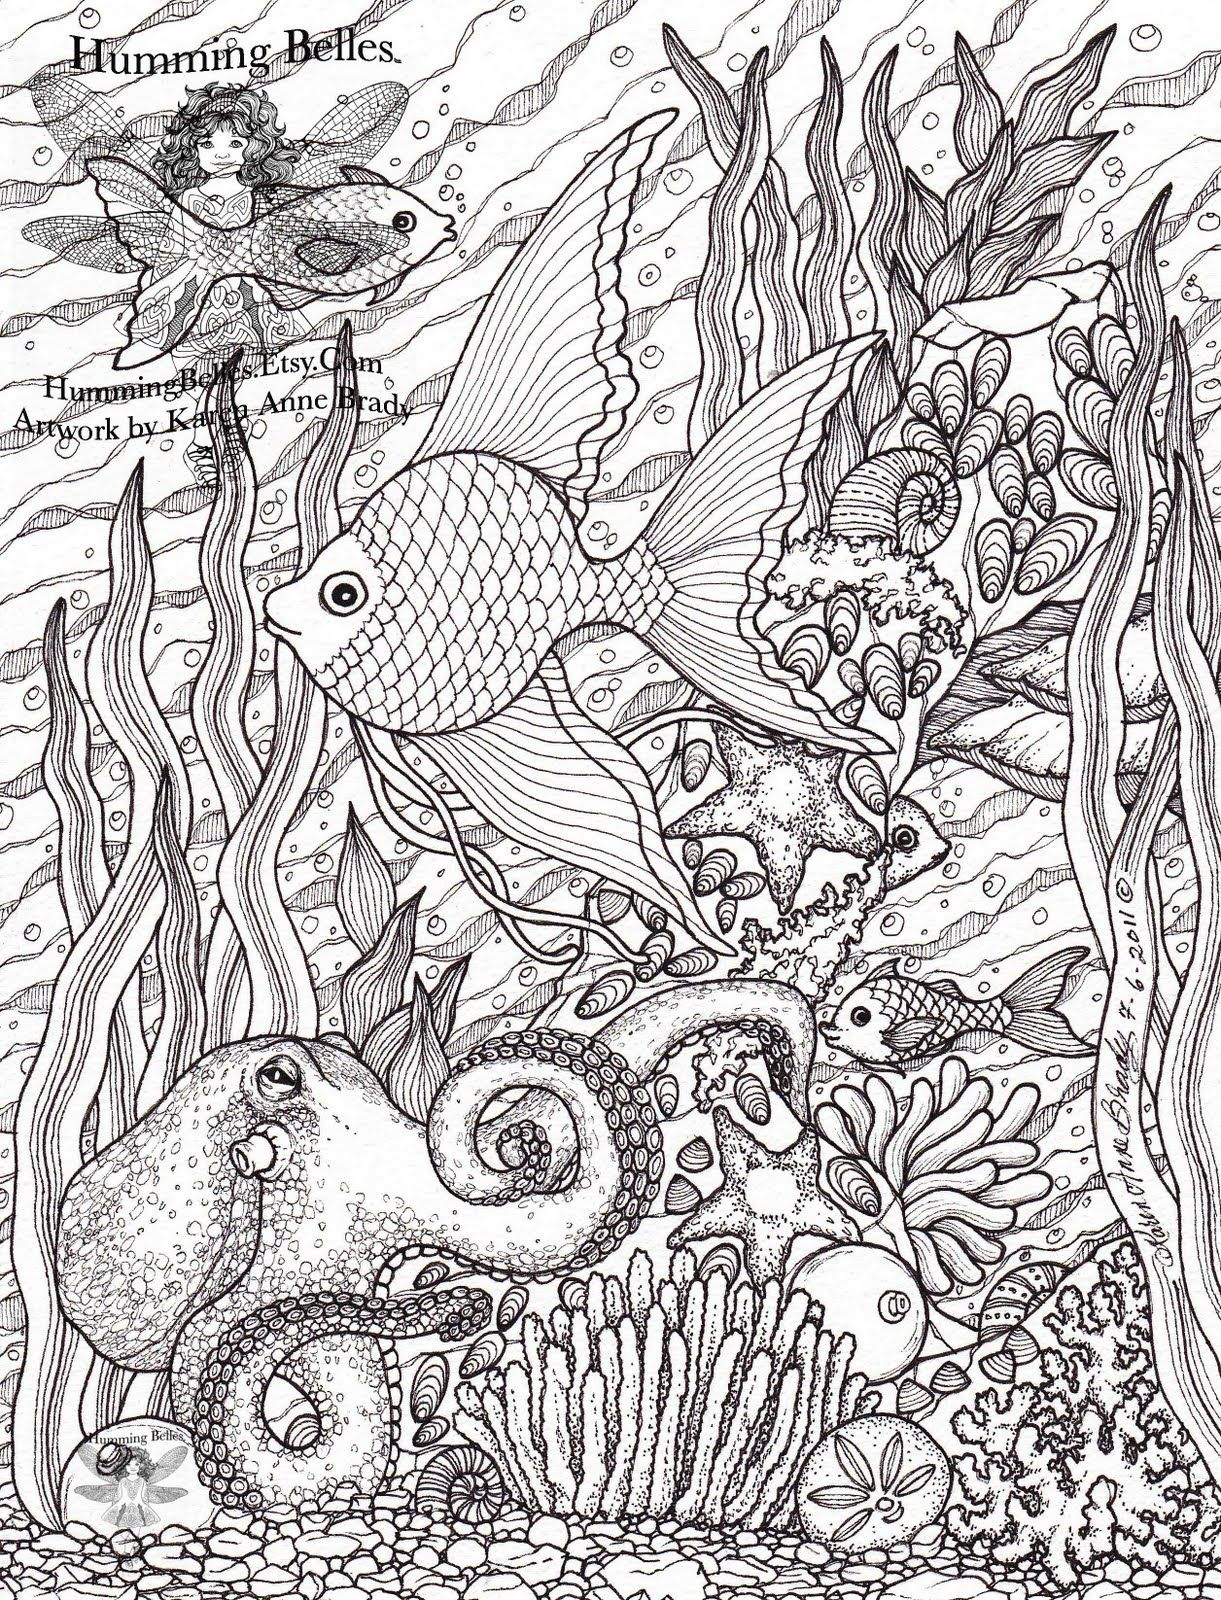 "humming belles coloring pages Collection-Humming Belles"" New Undersea Illustrations and Coloring Pages 2-k"